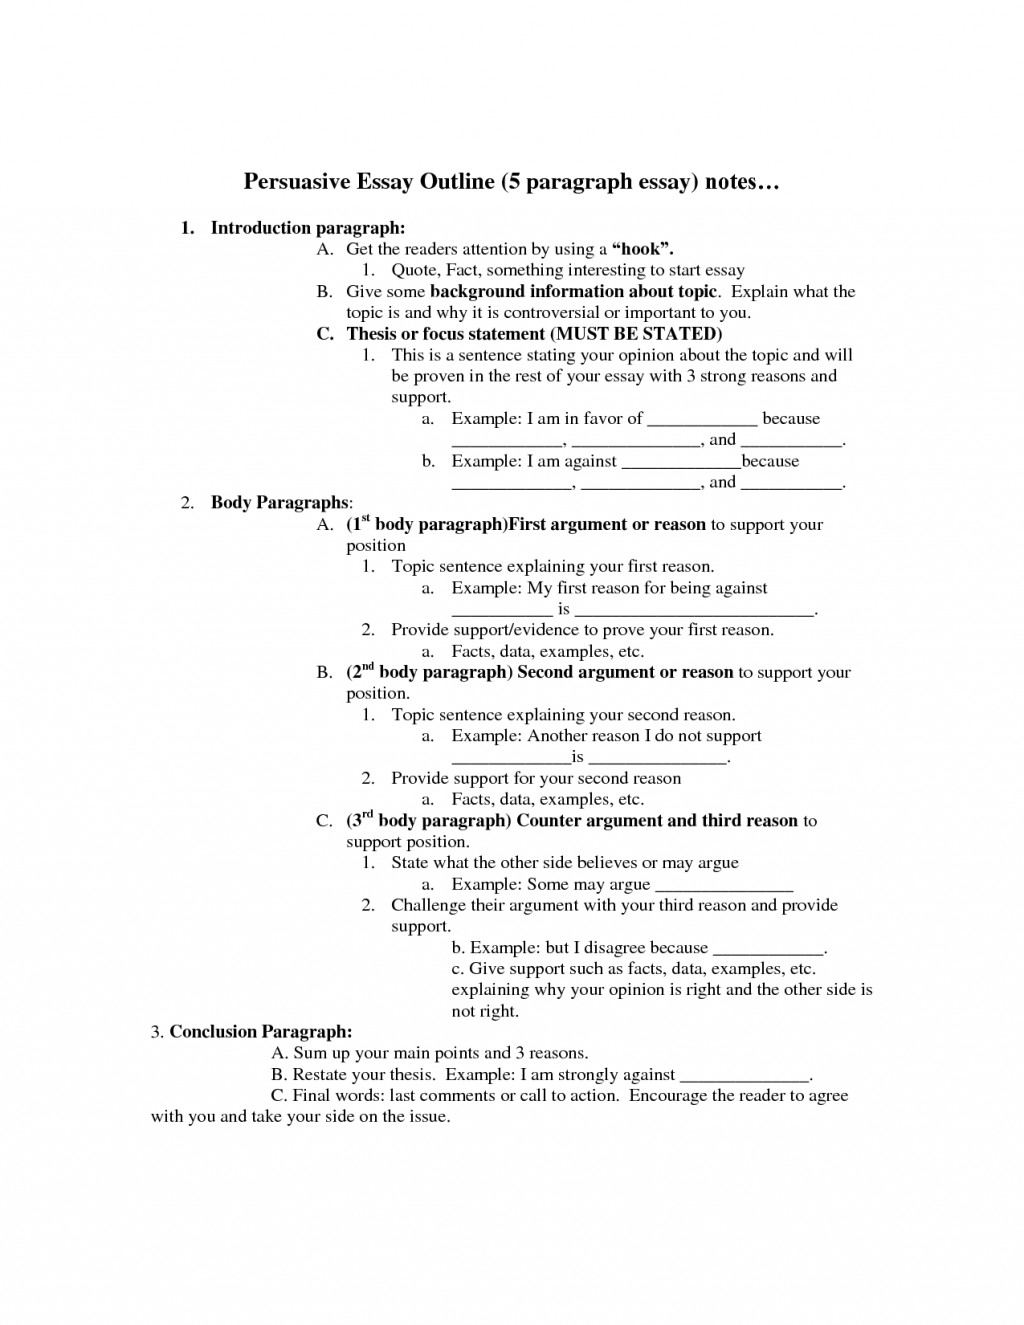 010 Outlining An Essay Best Lesson Plan Worksheets Article Large